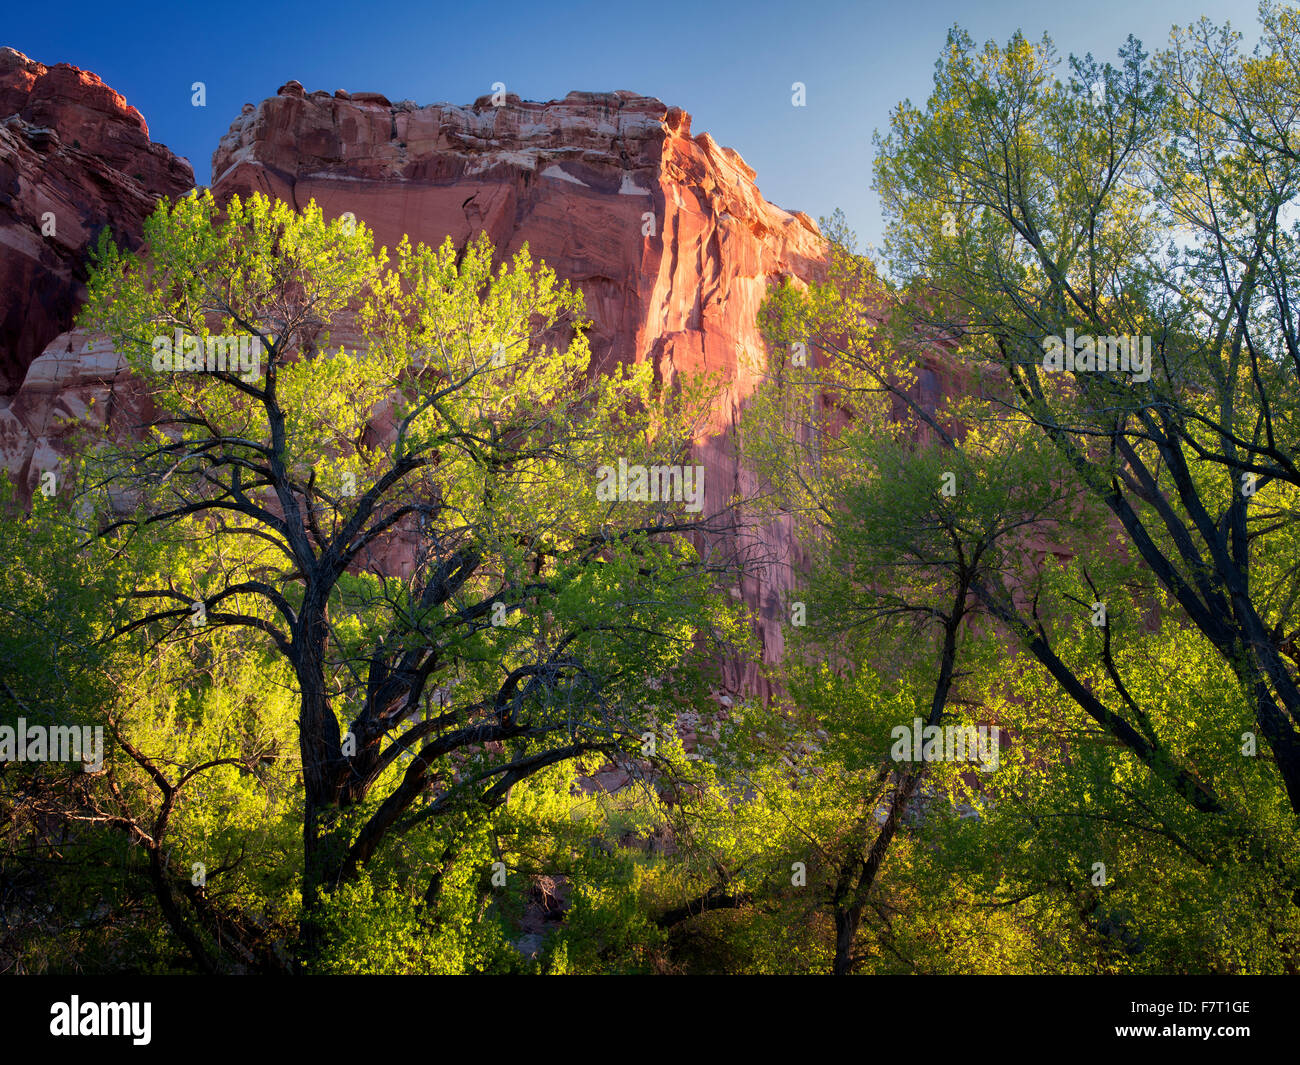 Cottonwood trees and rock formations. Fruita, Capitol Reef National Park, Utah - Stock Image